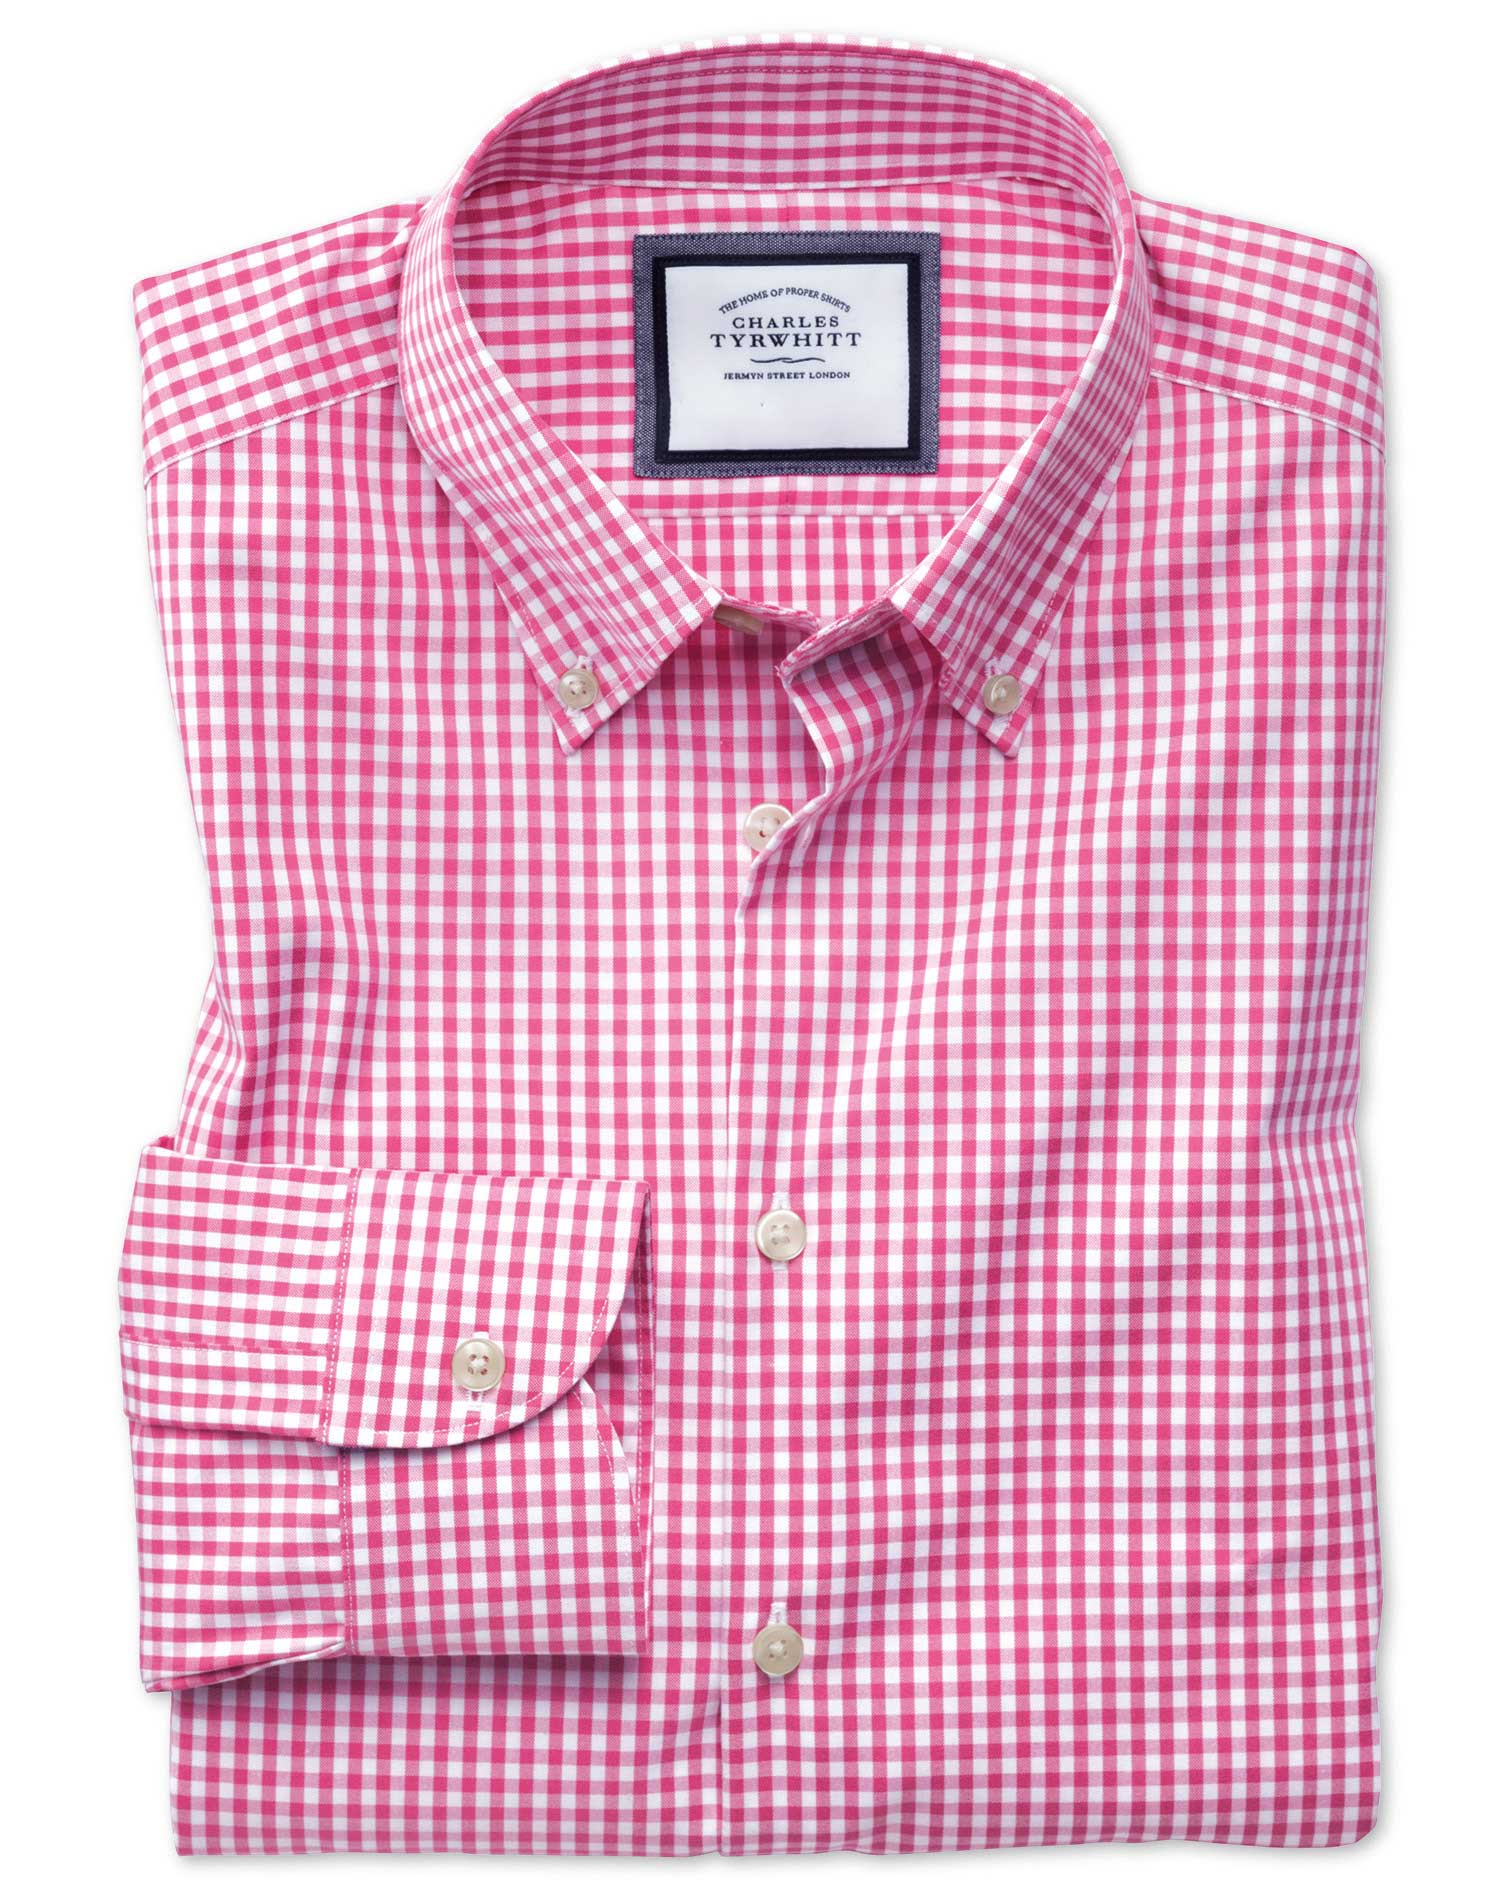 Classic Fit Button-Down Business Casual Non-Iron Pink Cotton Formal Shirt Single Cuff Size 17.5/38 b